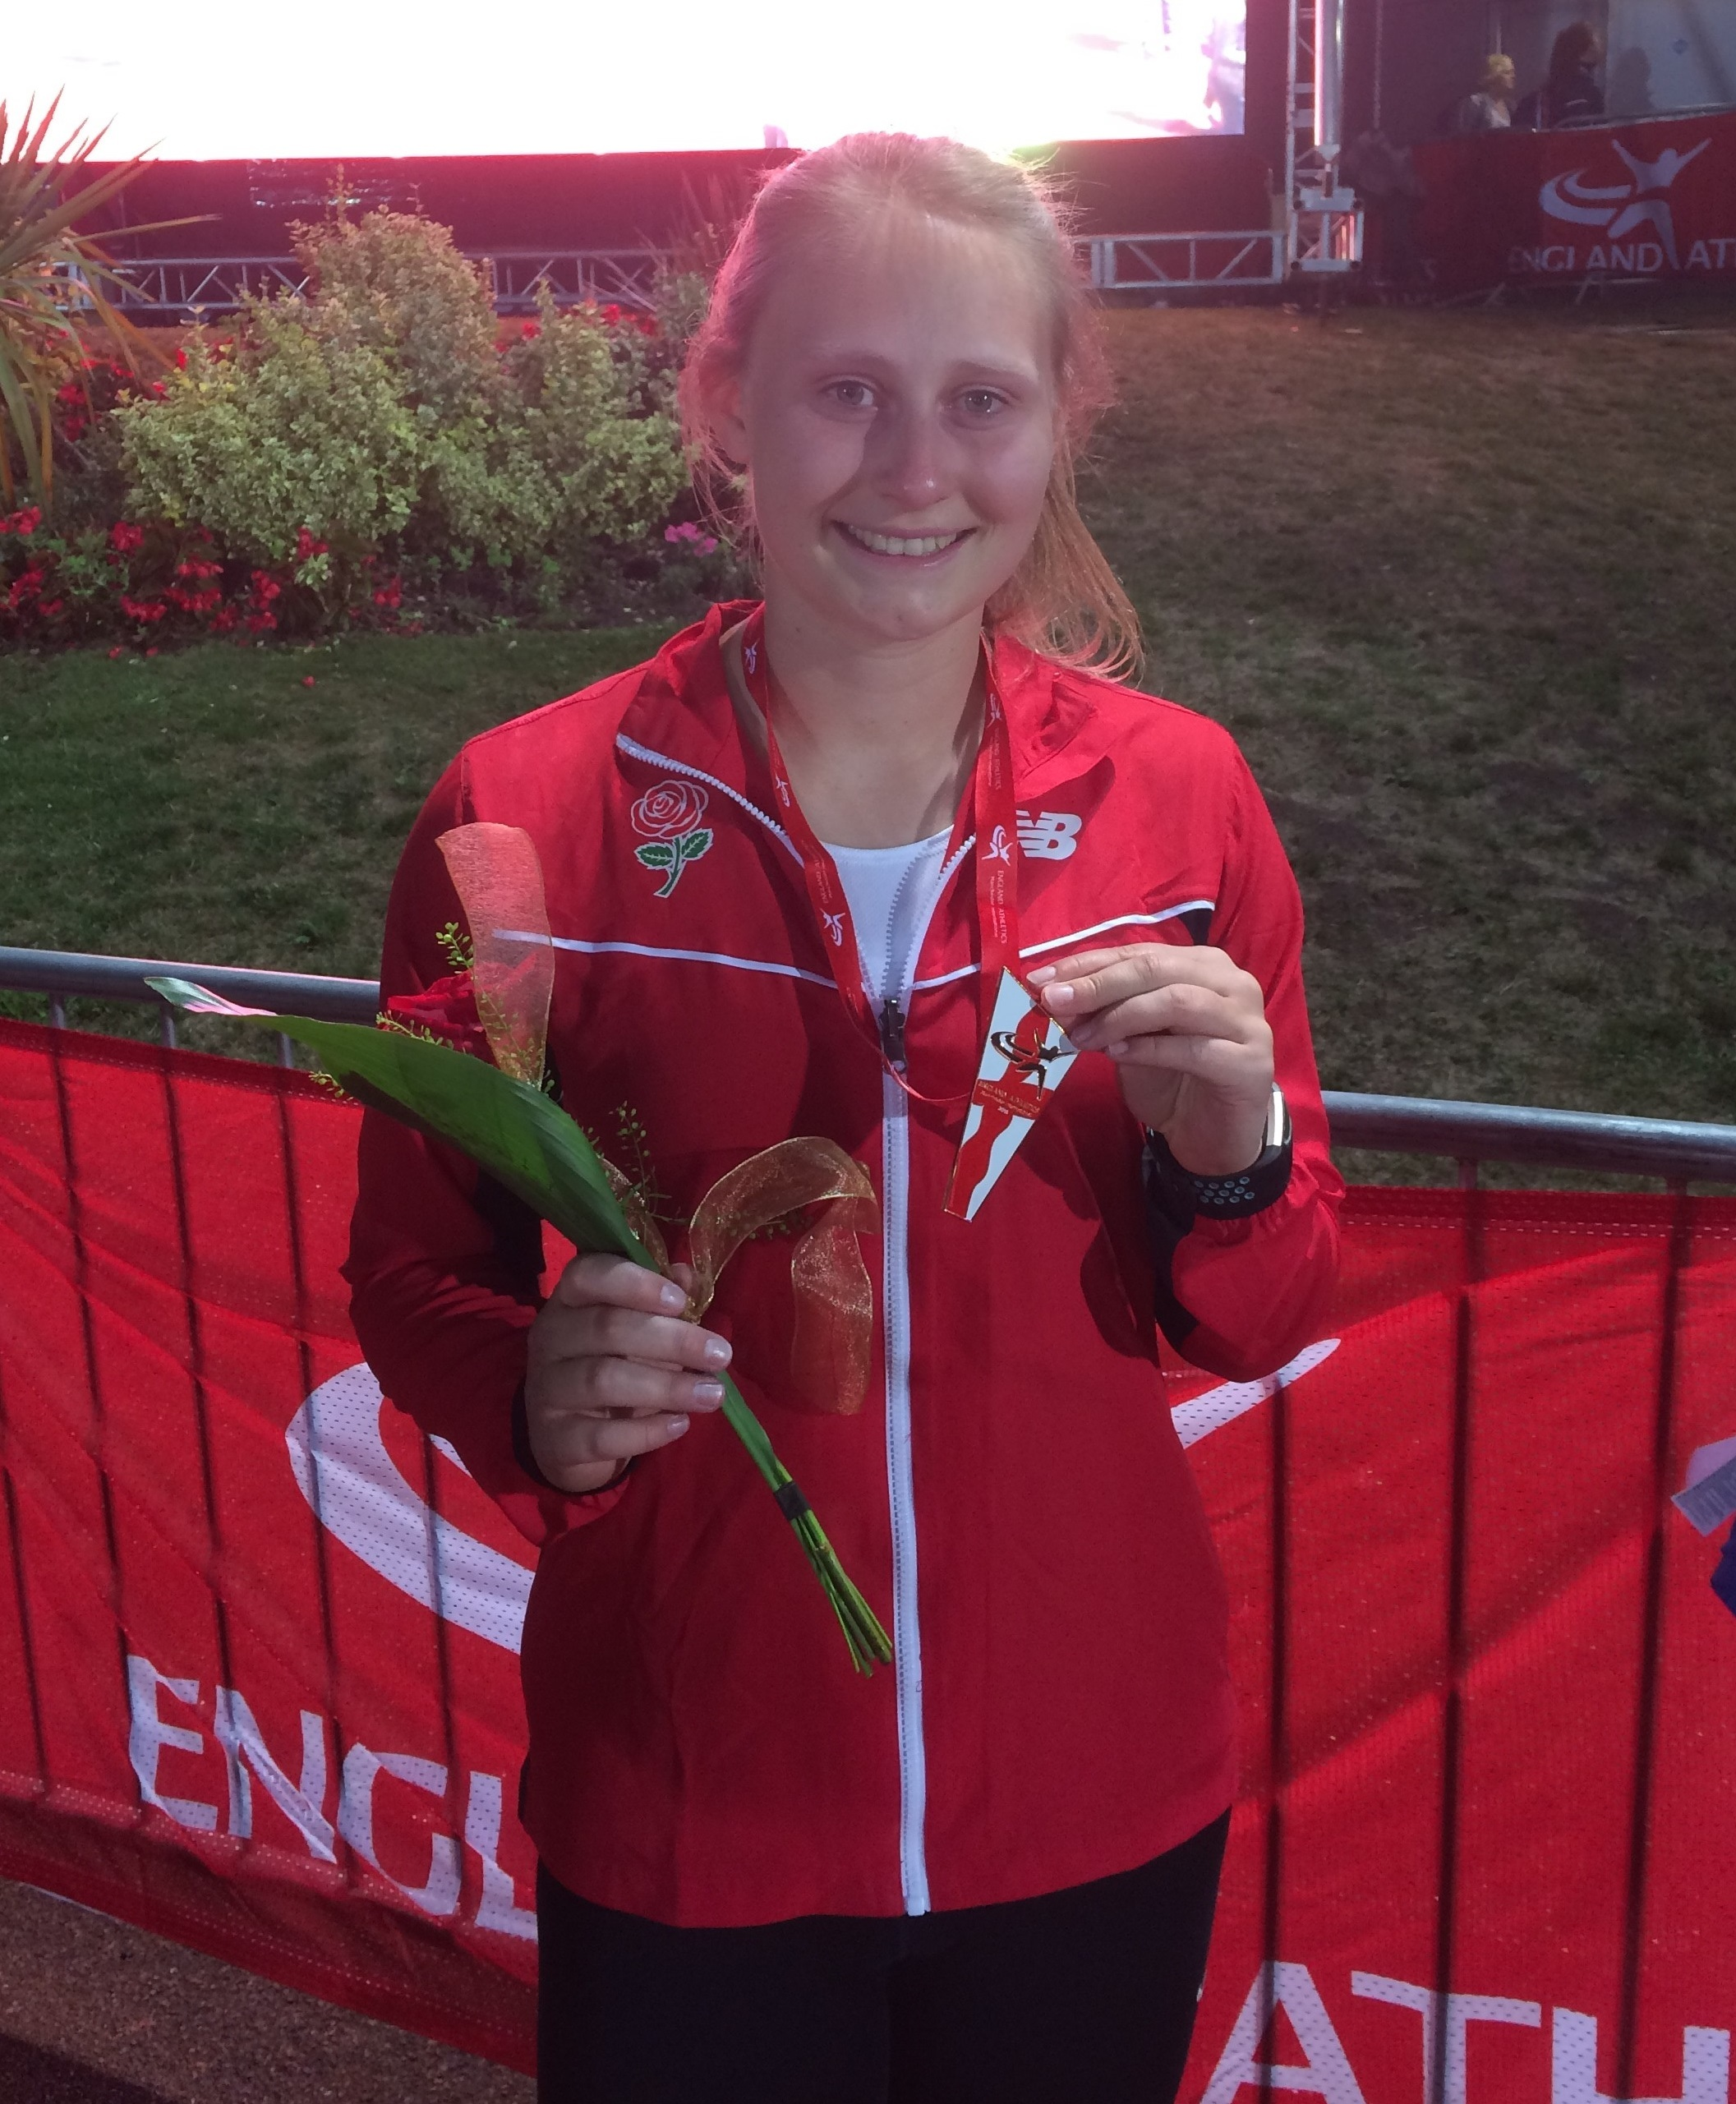 Kathyrn Woodcock with her bronze medal from the Manchester International